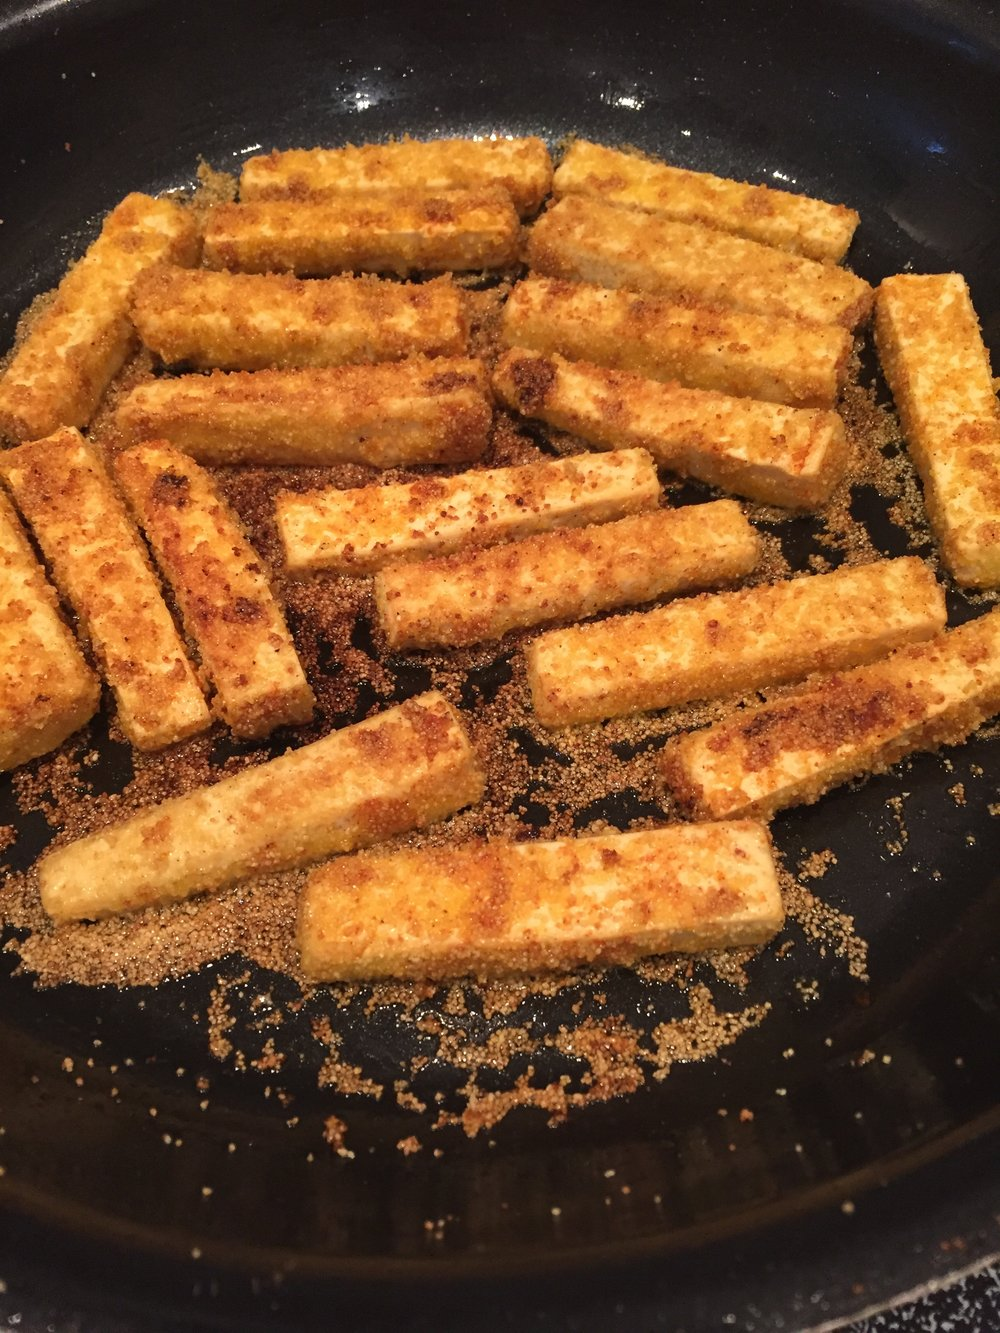 Tofu lightly fried in avocado oil